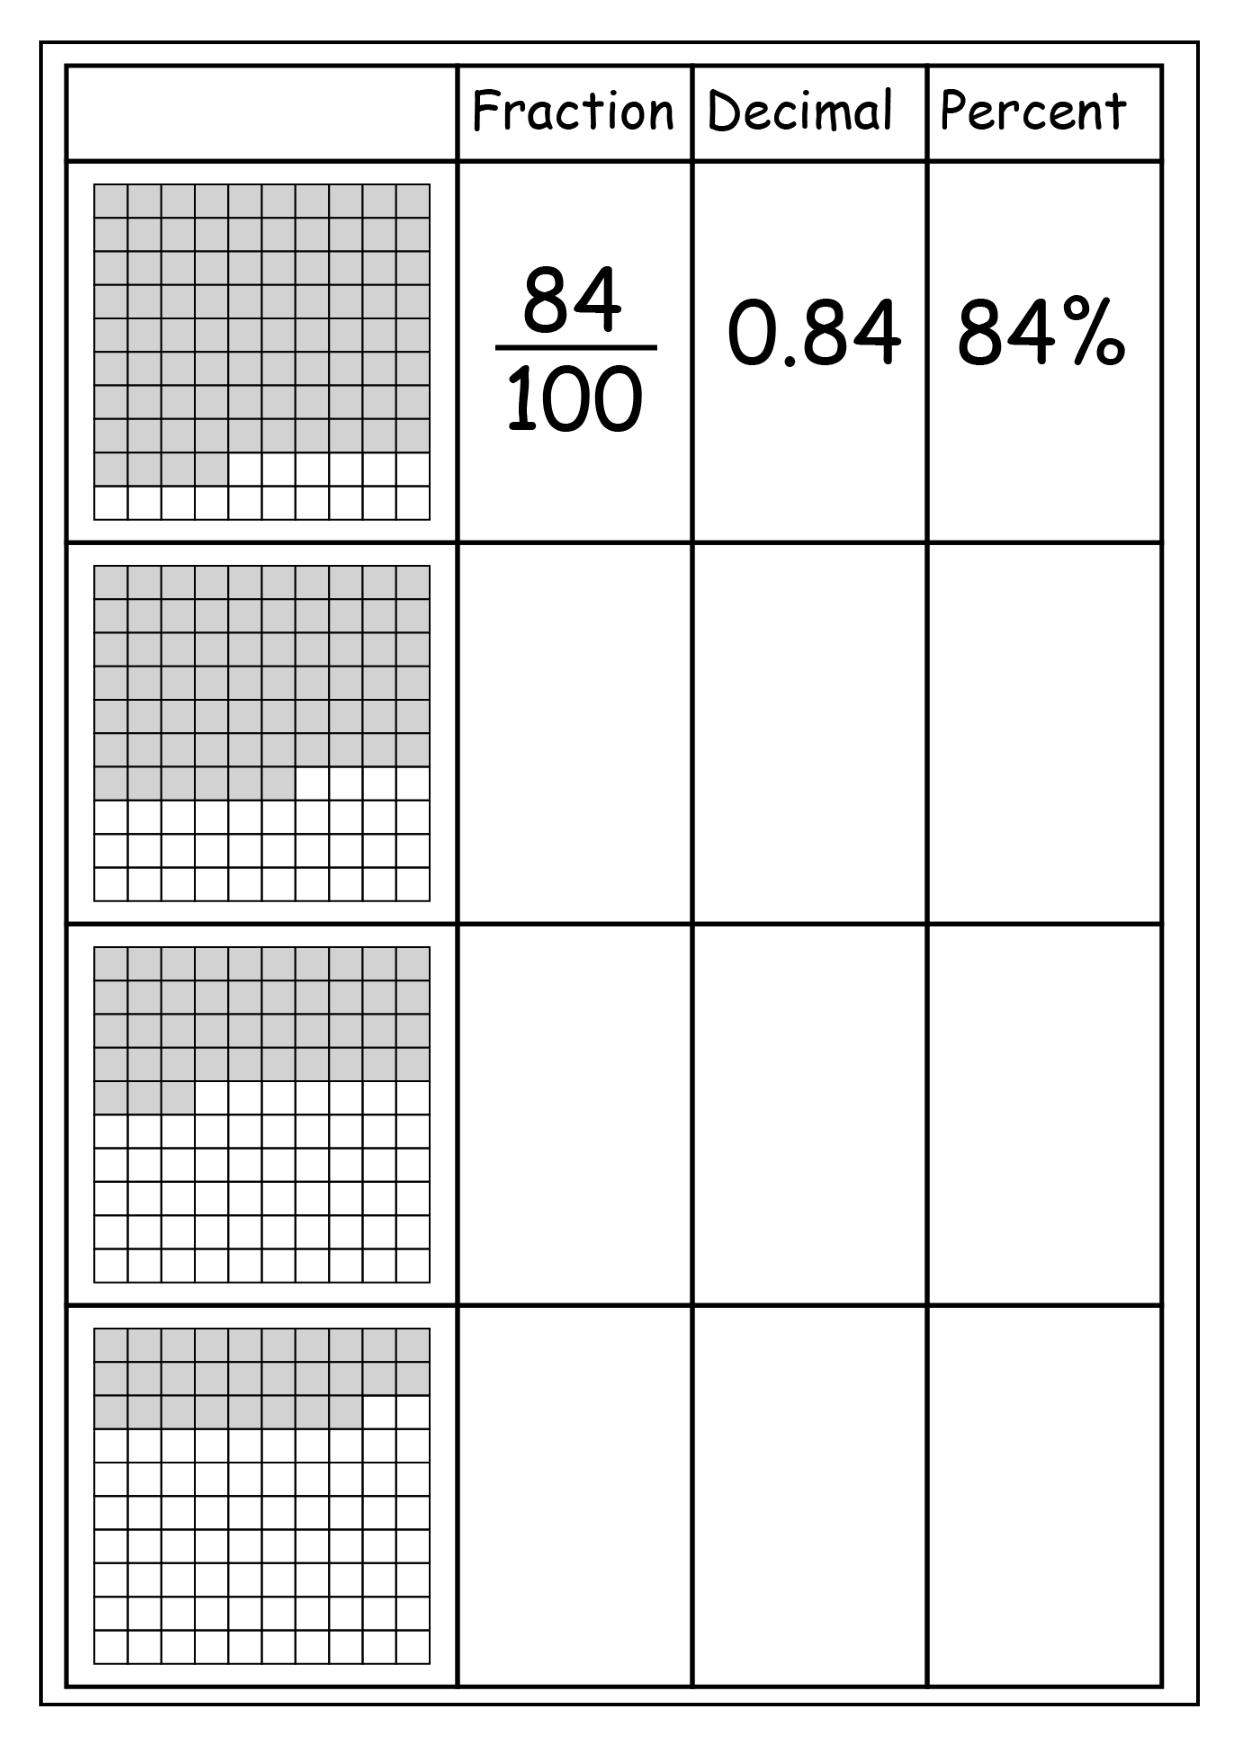 Converting Fractions To Decimals To Percents Worksheet 6th